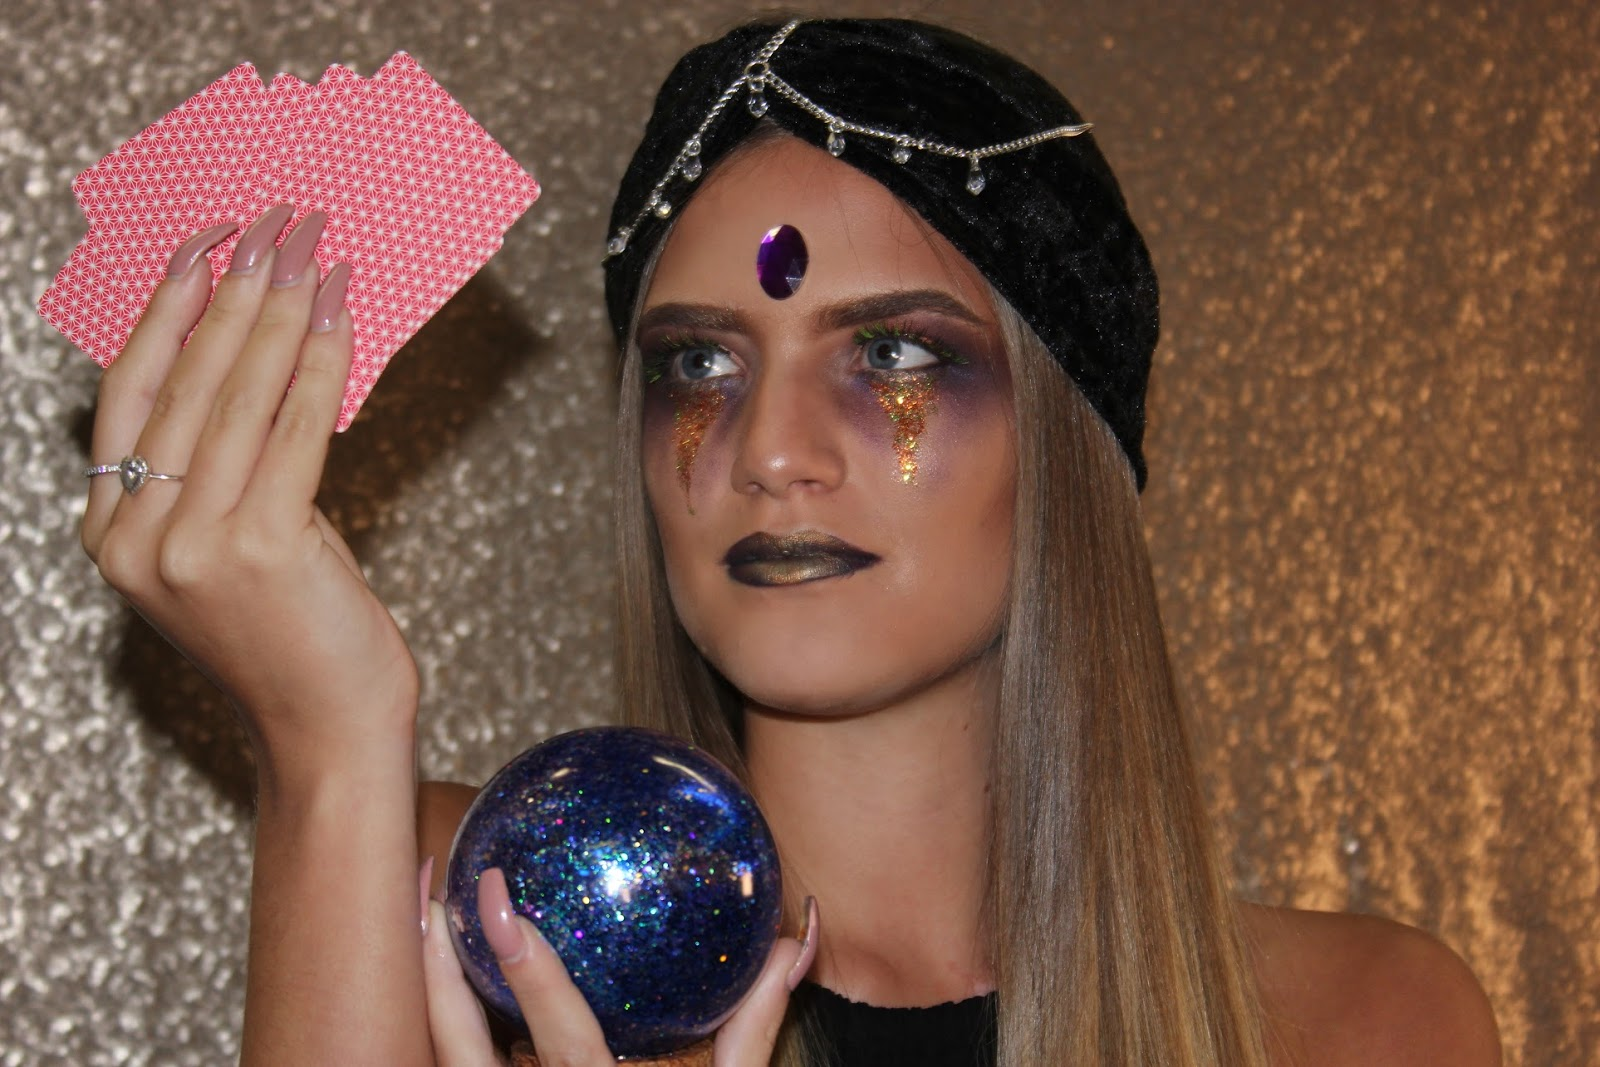 Halloween Fortune Teller Makeup.Halloween Fortune Teller Make Up Look Beauxoxo Handmade Hair